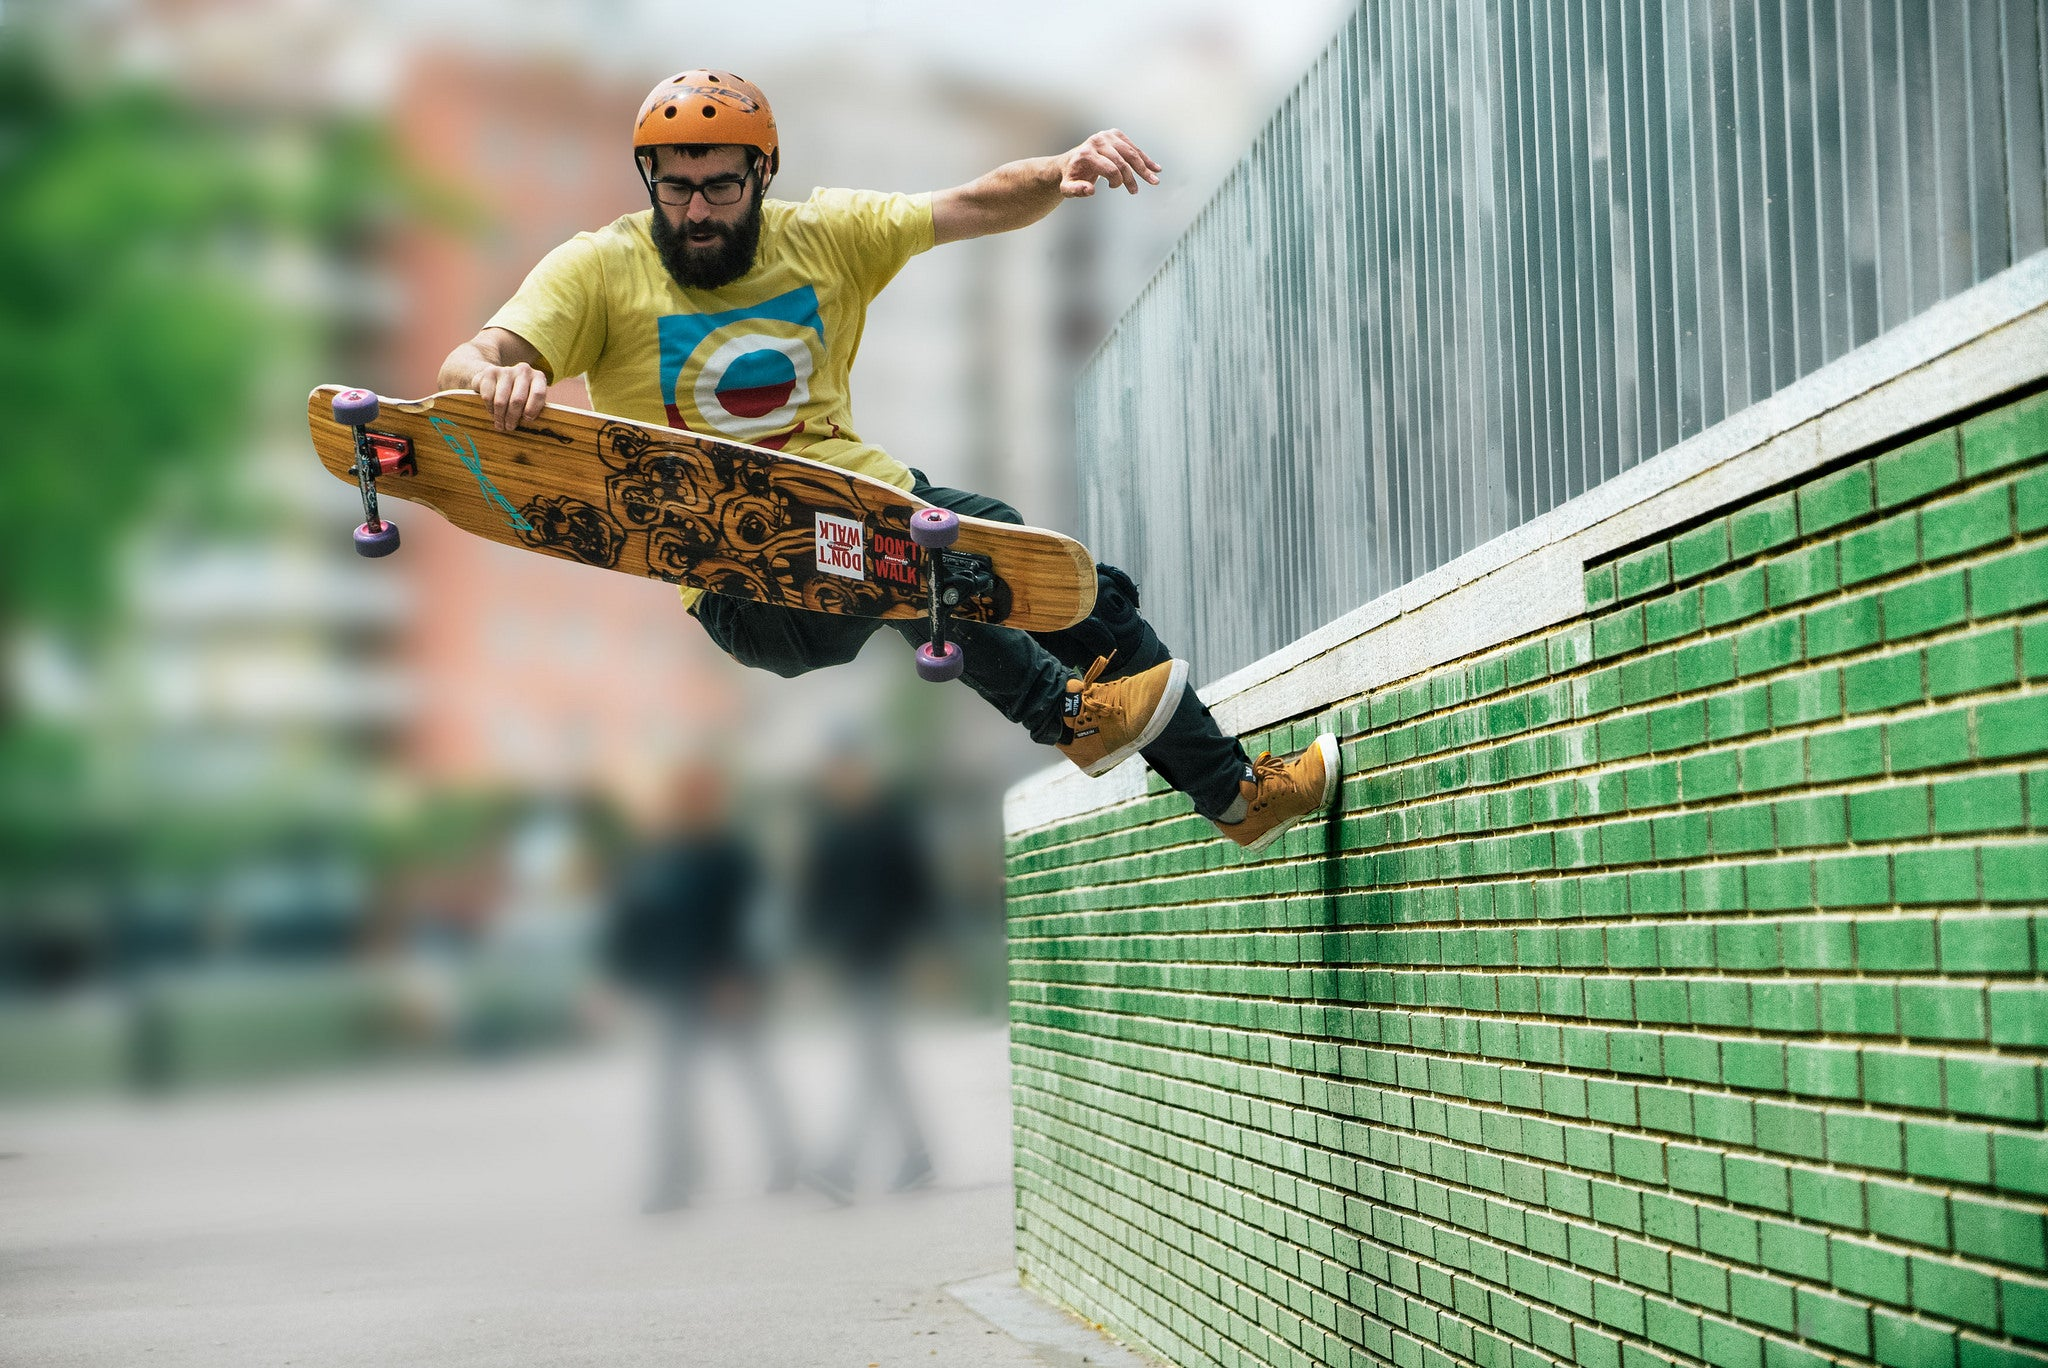 loaded-boards-6-most-influential-brands-in-skateboarding-photo